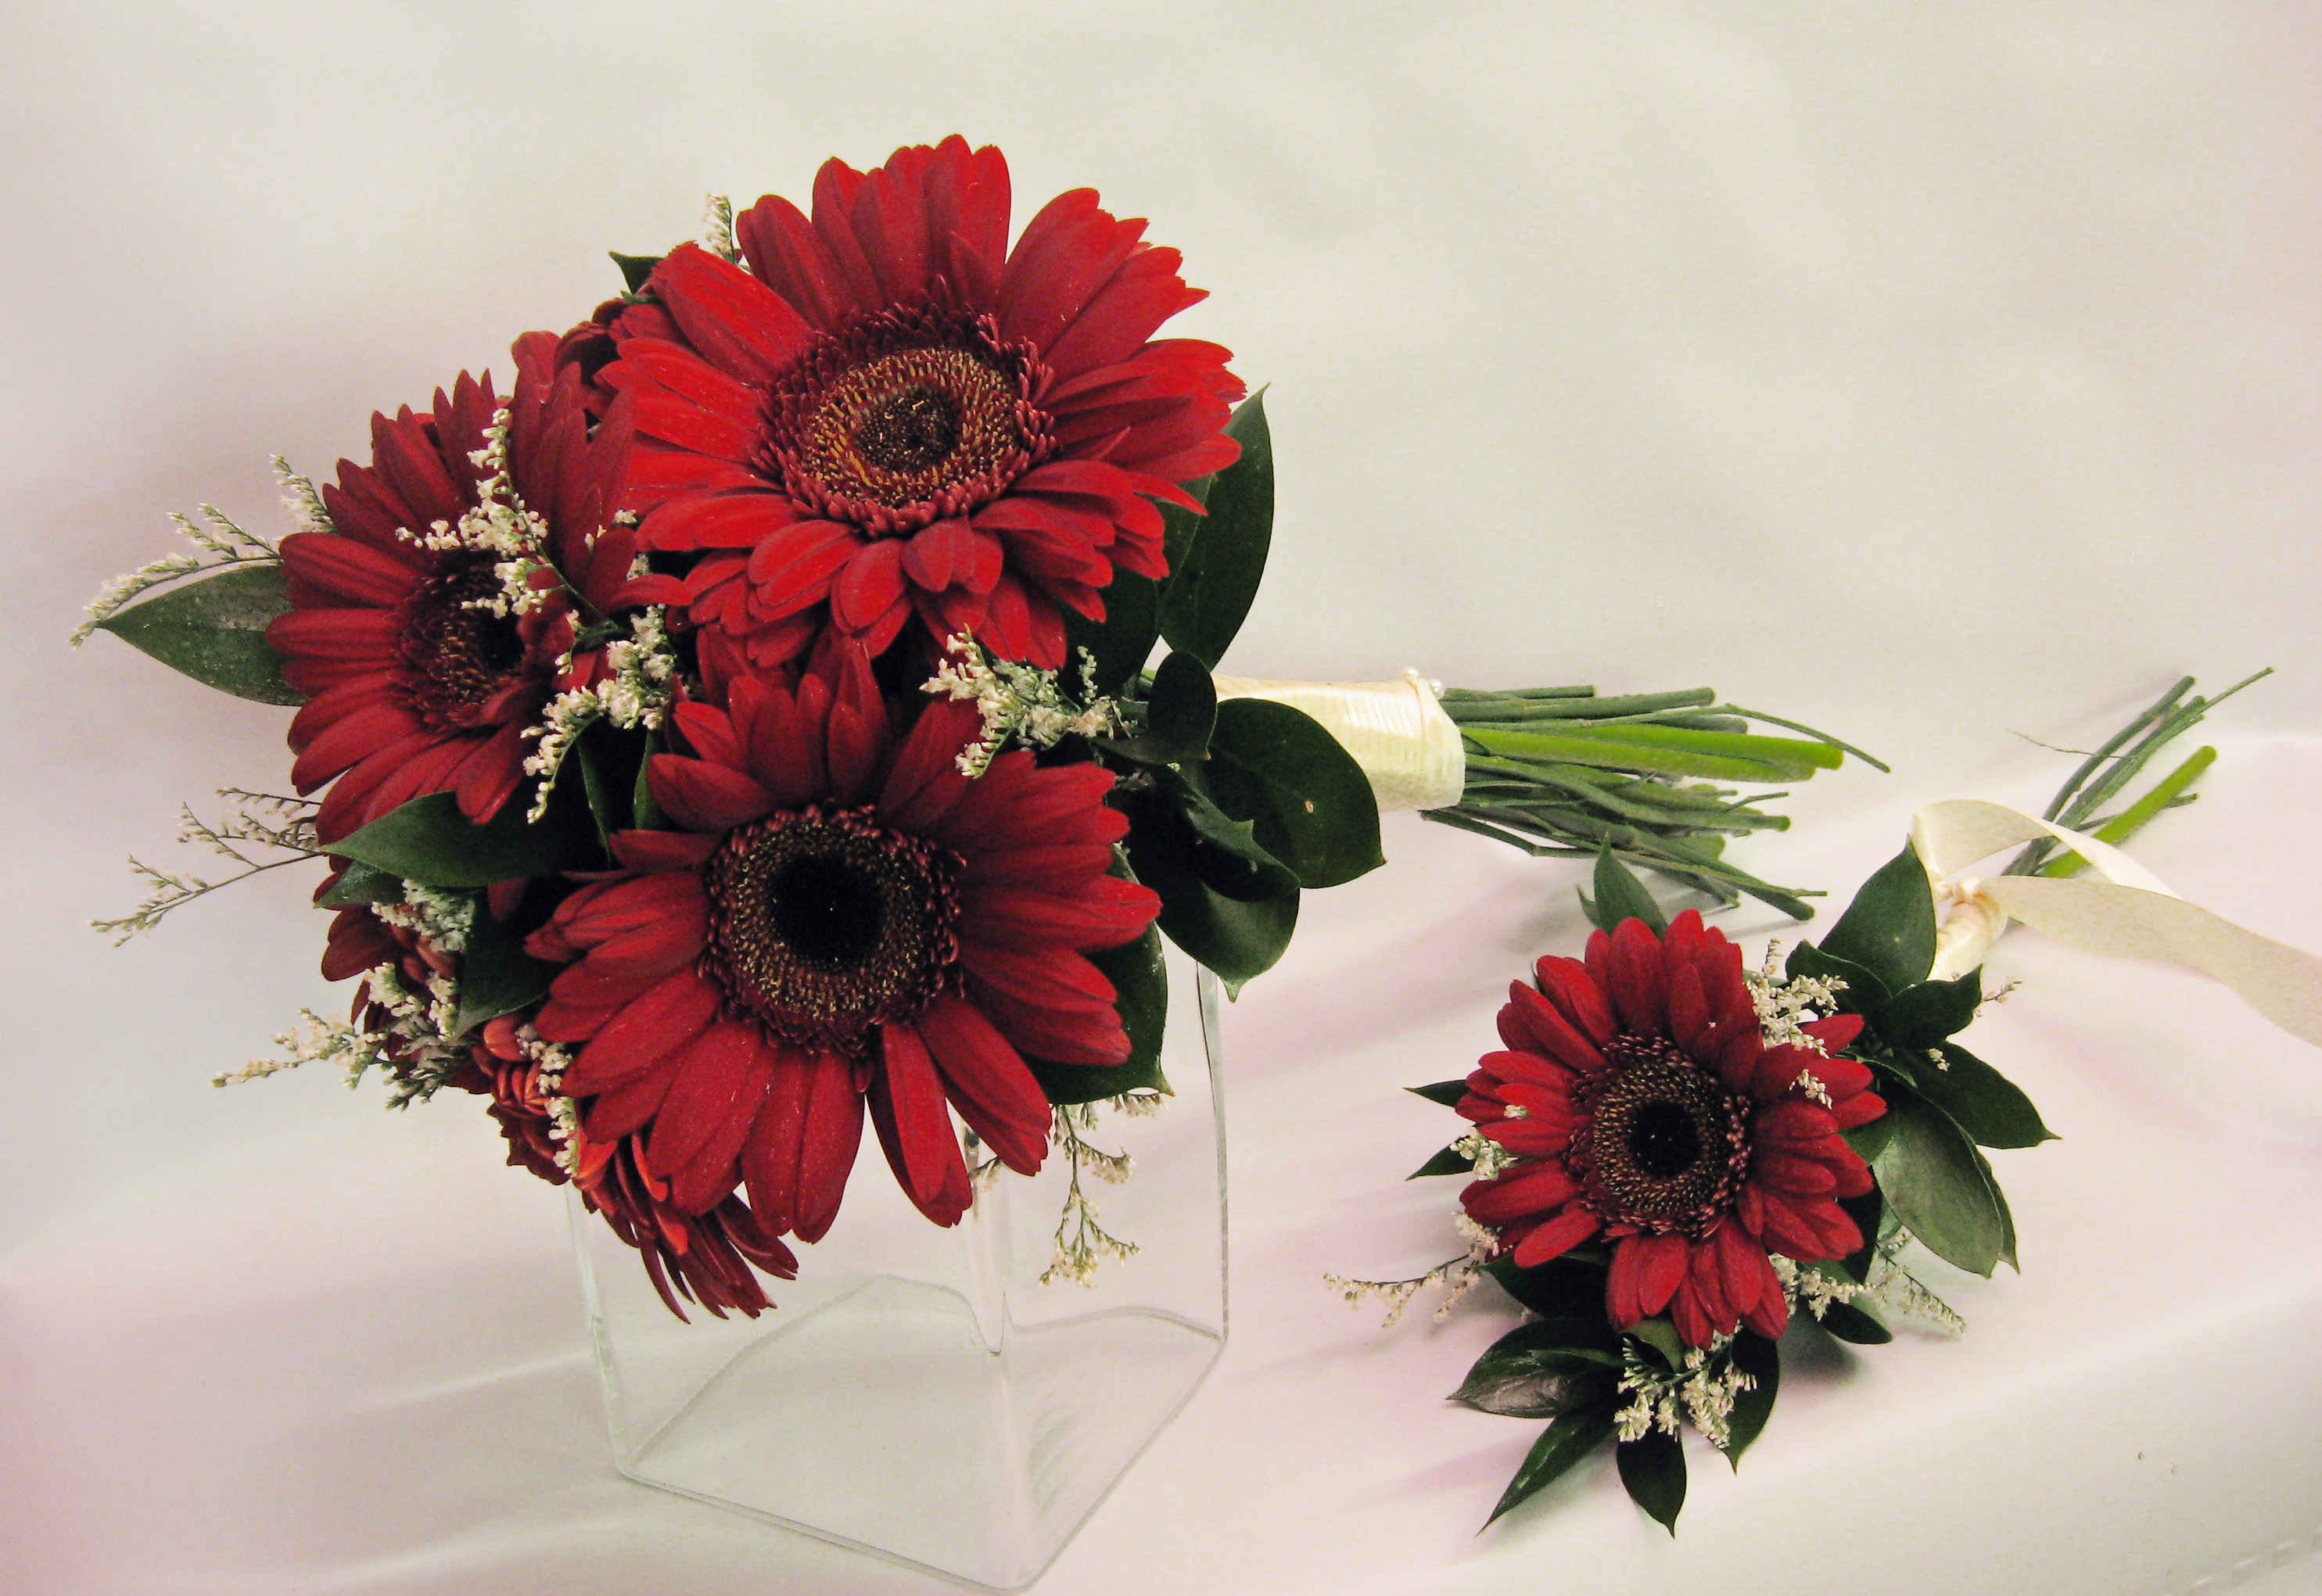 Fall Gerbera Daisy Bouquet Wedding Flowers | Piza...